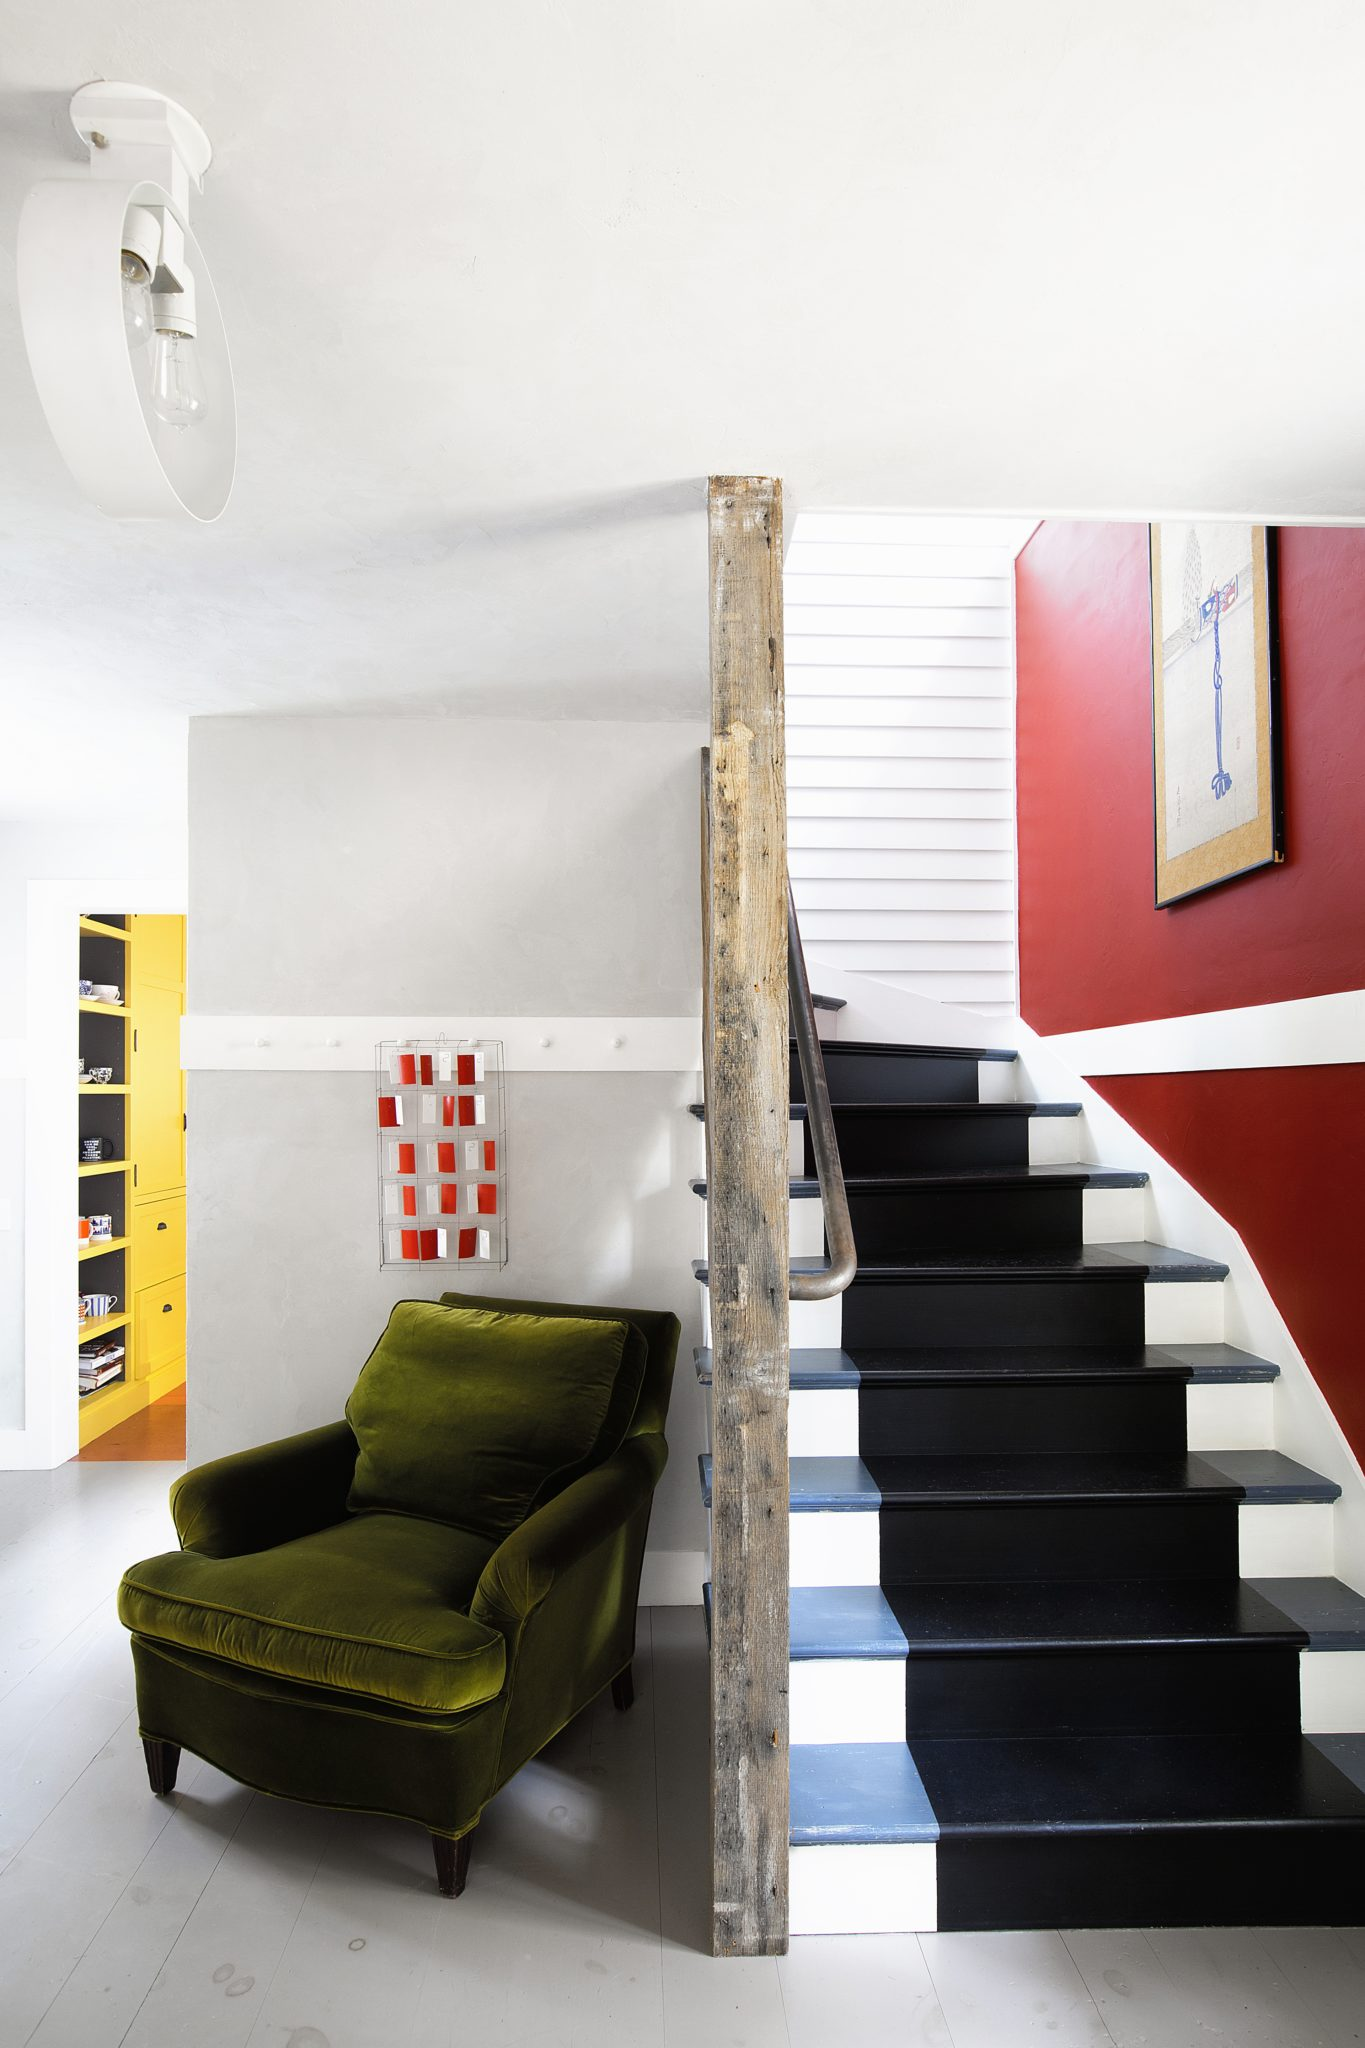 Connecticut Farmhouse, Stair hall in a Bright Palette by Douglas C. Wright Architects